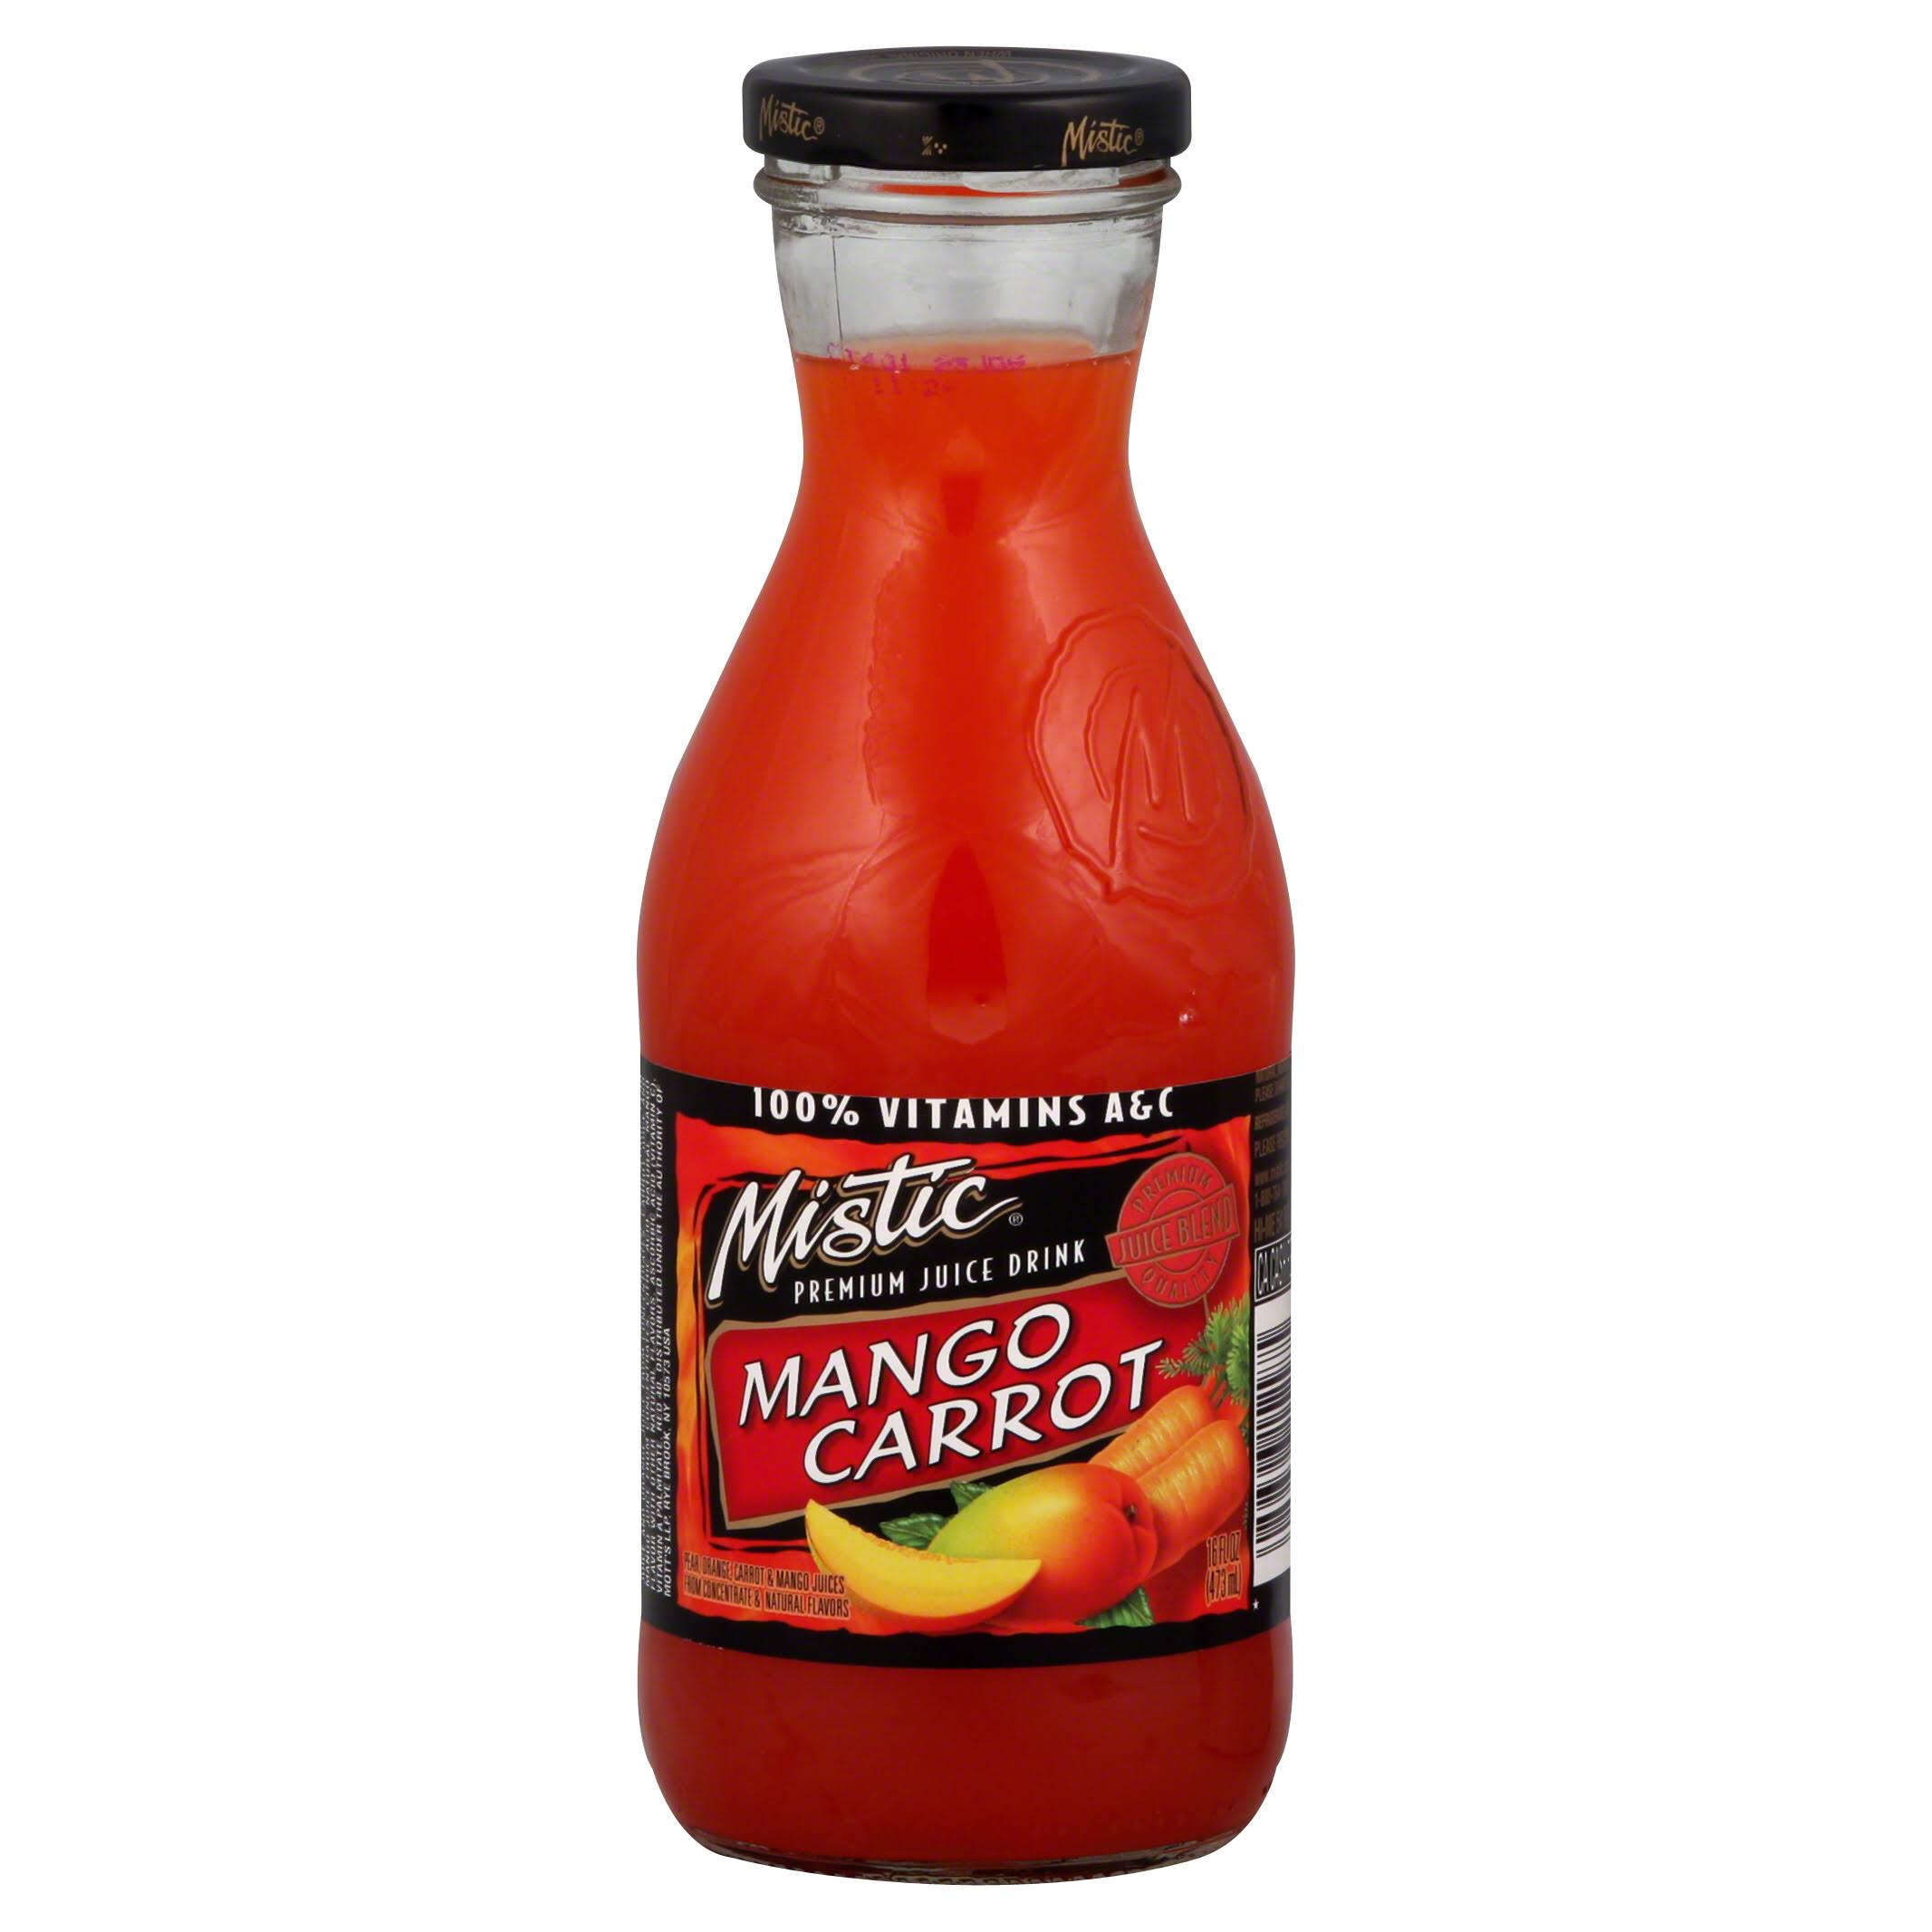 Mistic Mango Carrot Juice - 16 Oz